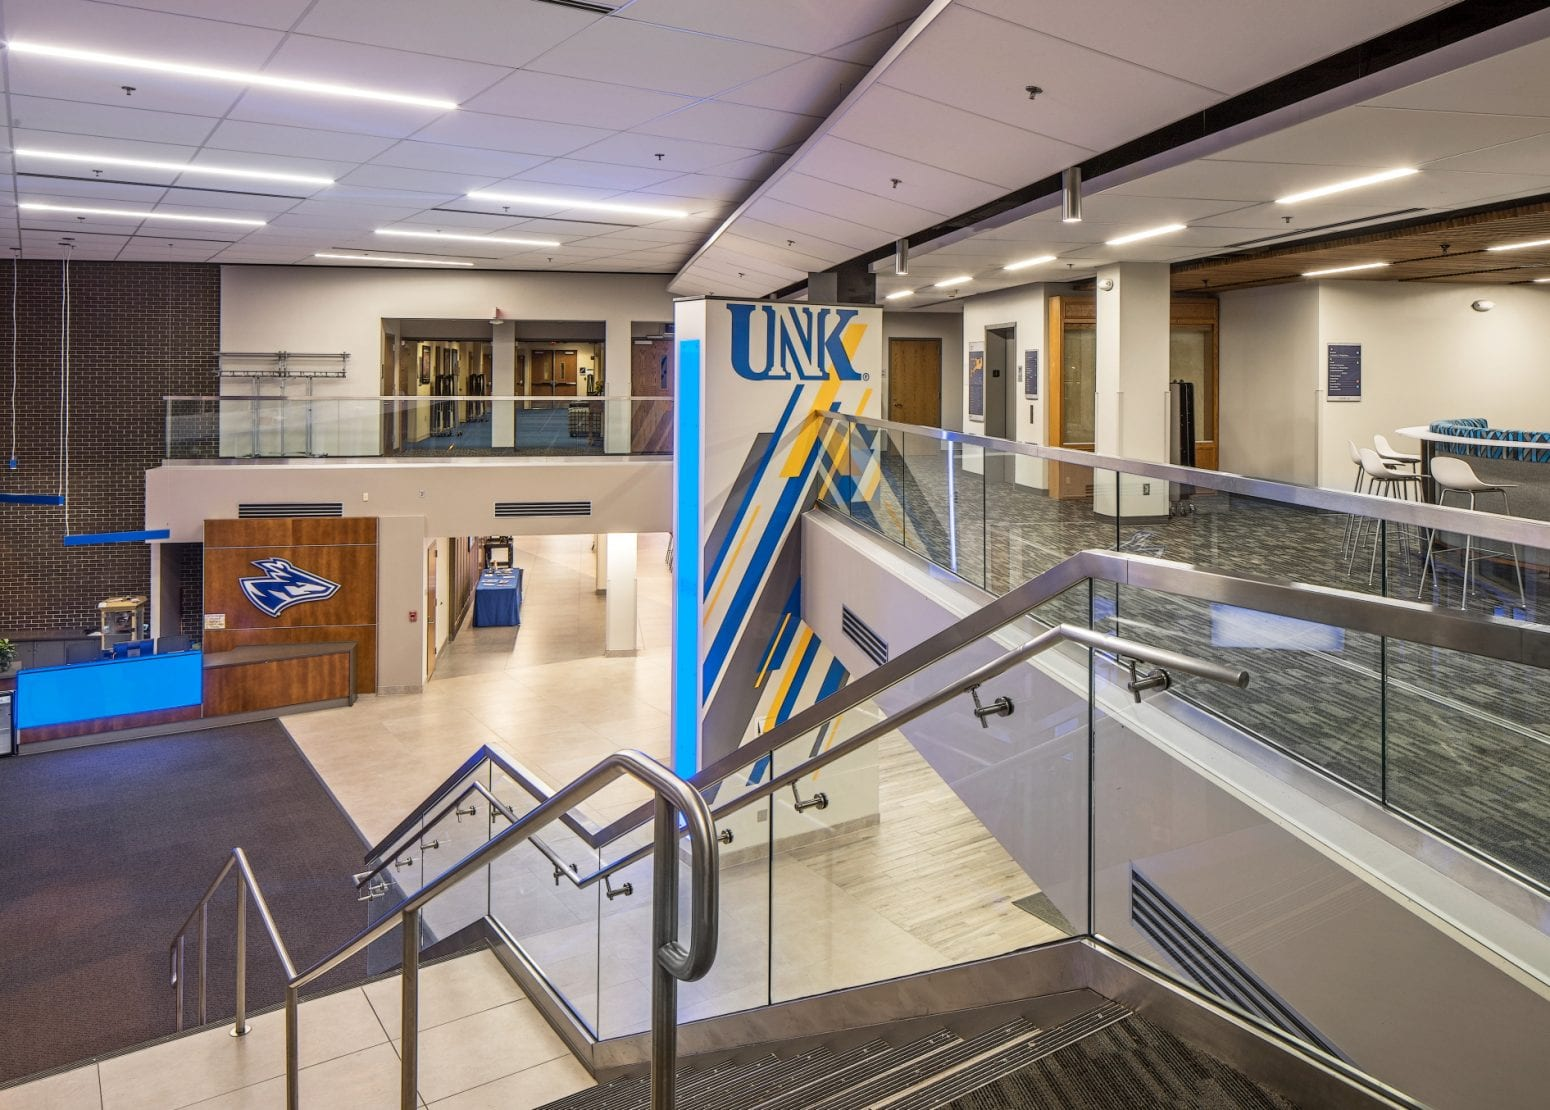 Schemmer University of Nebraska Kearney Student Union Project